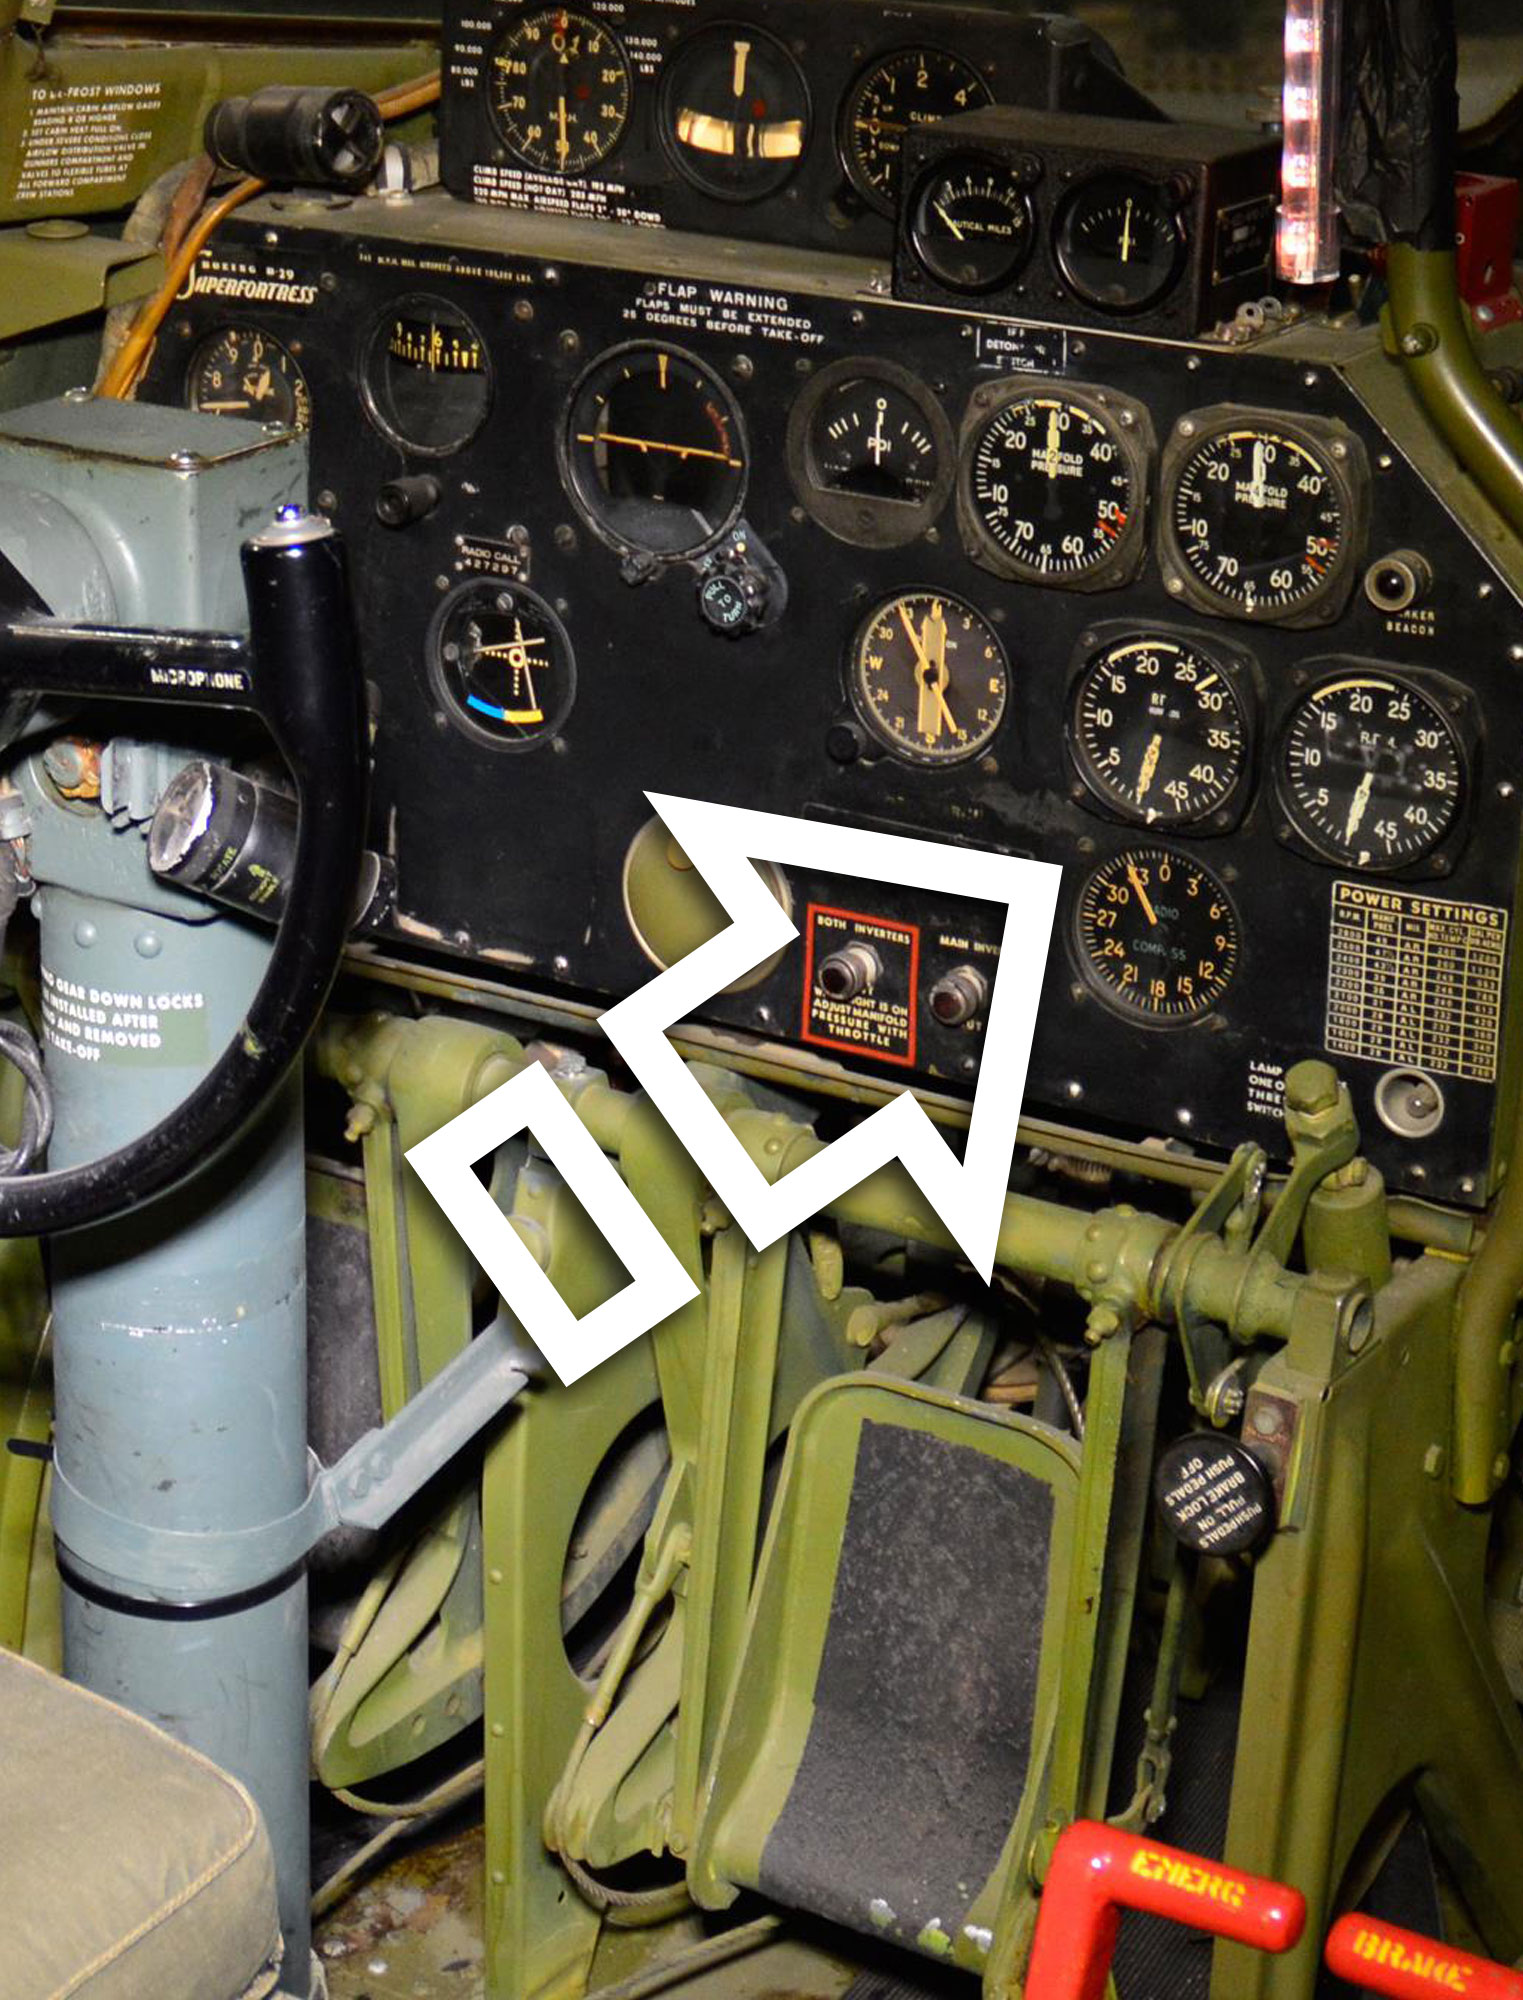 B-29 SUPER FORTRESS, AN5530 - 2A DUEL ENGINE RPM GAUGE